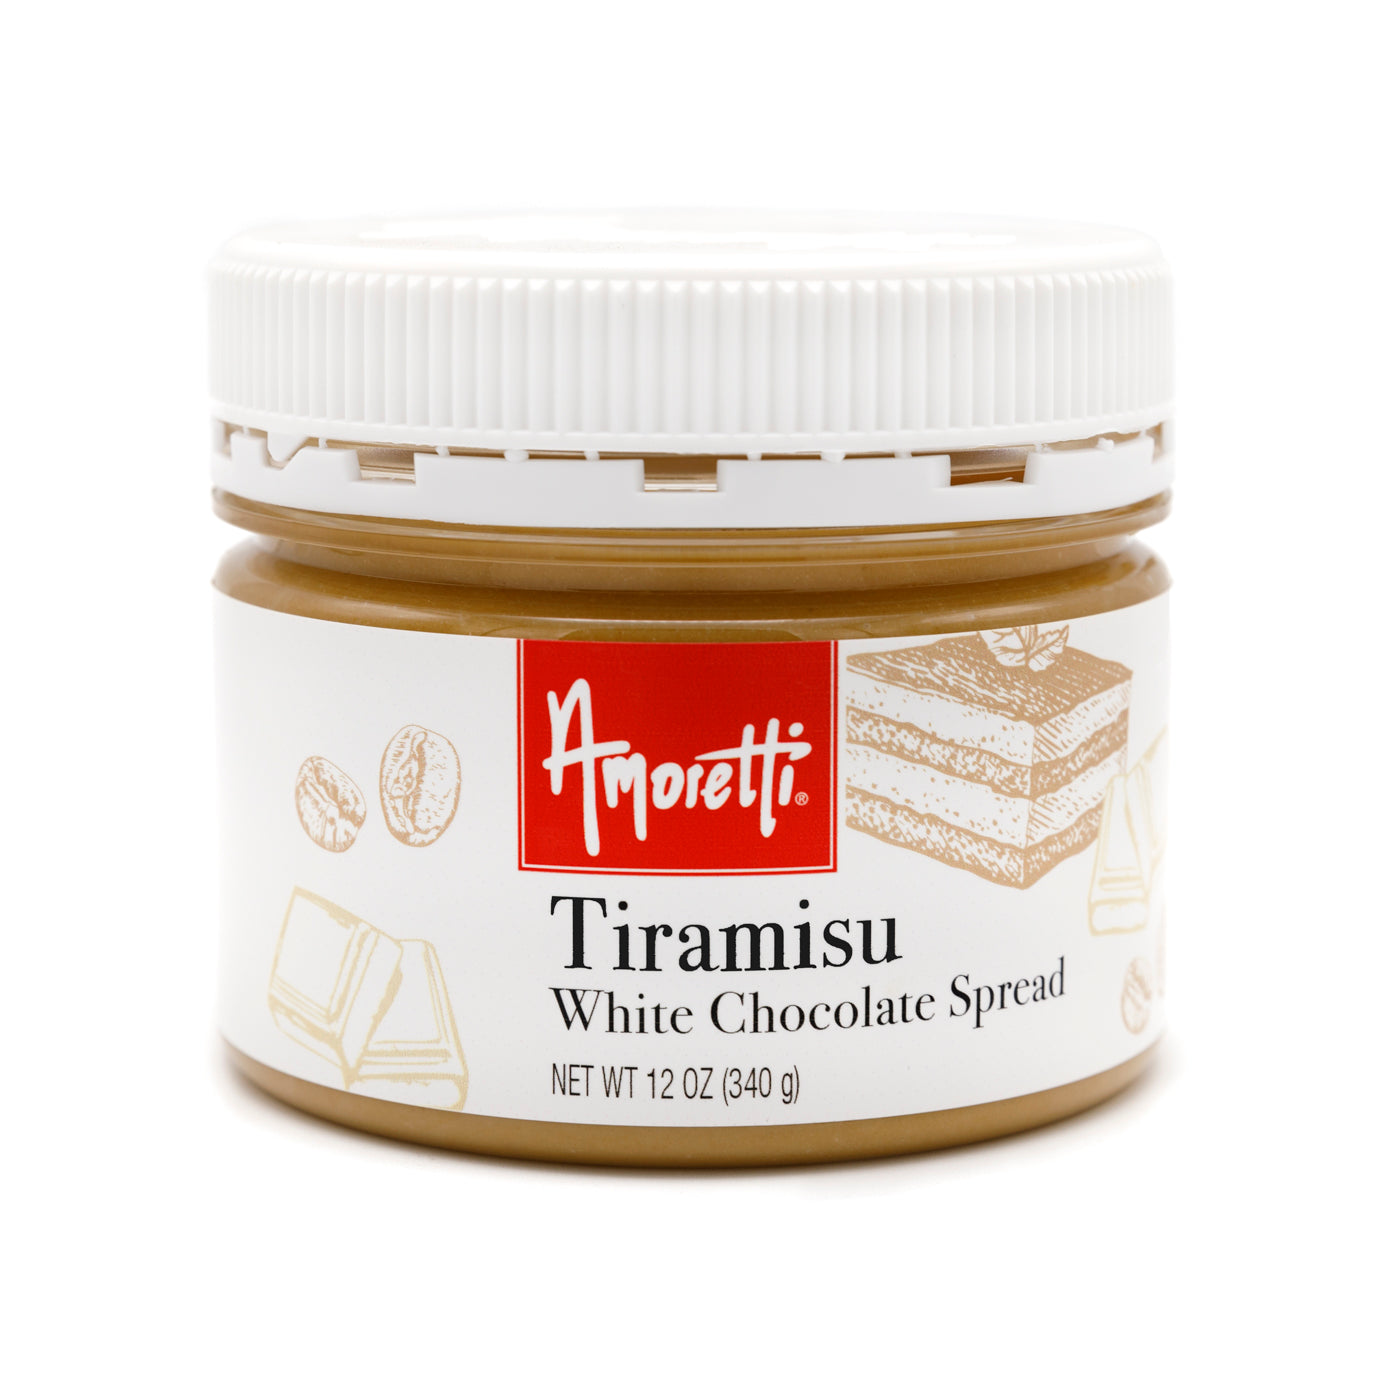 Tiramisu White Chocolate Spread